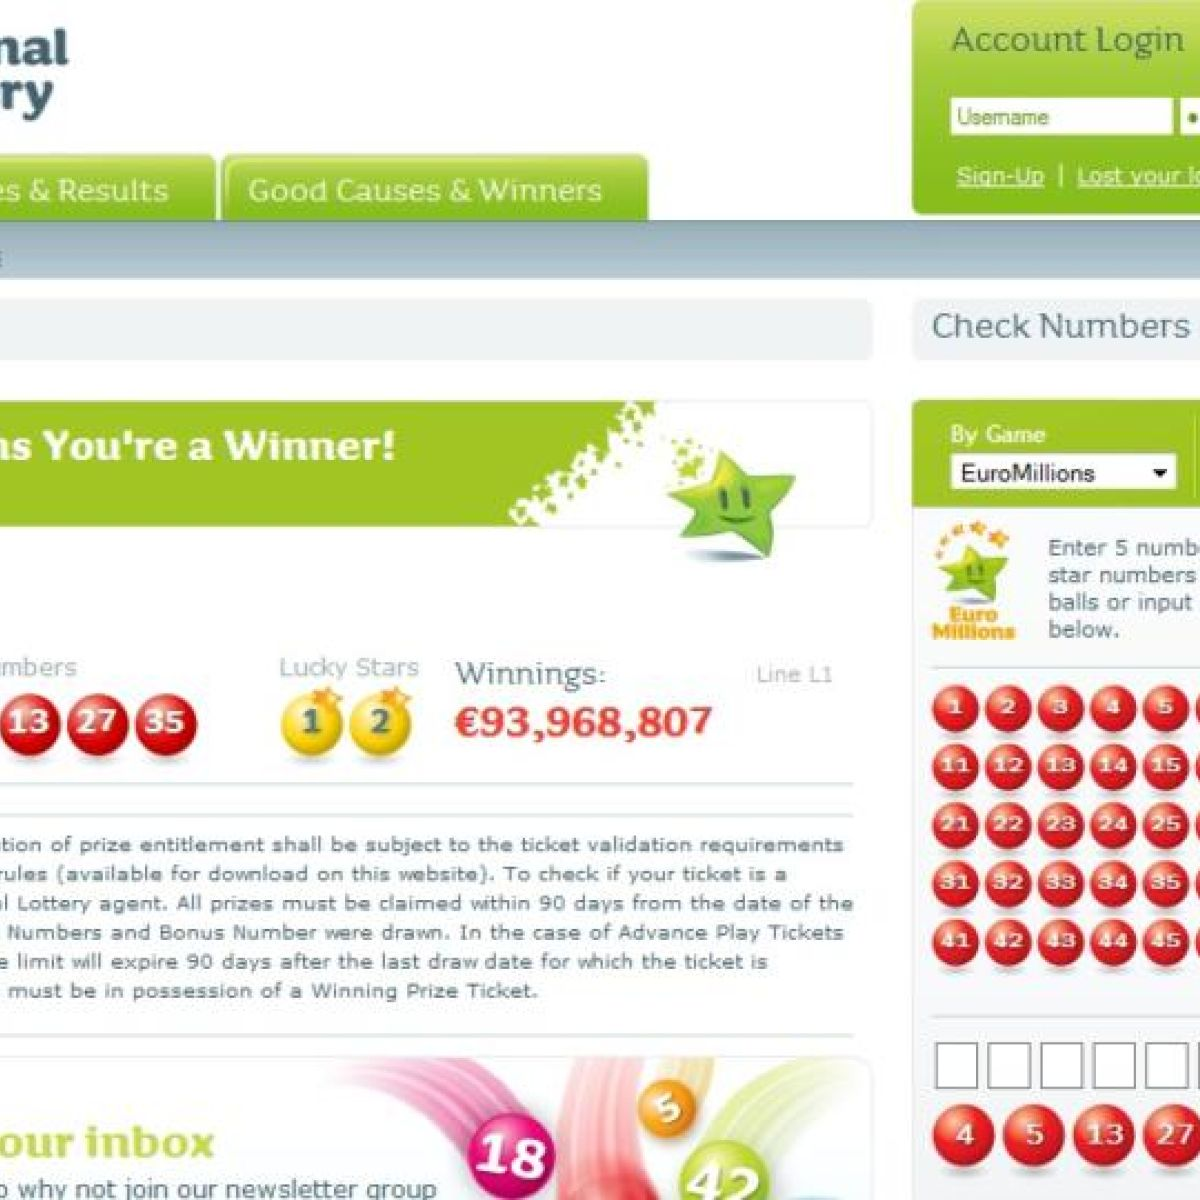 €94m winner contacts National Lottery to claim prize